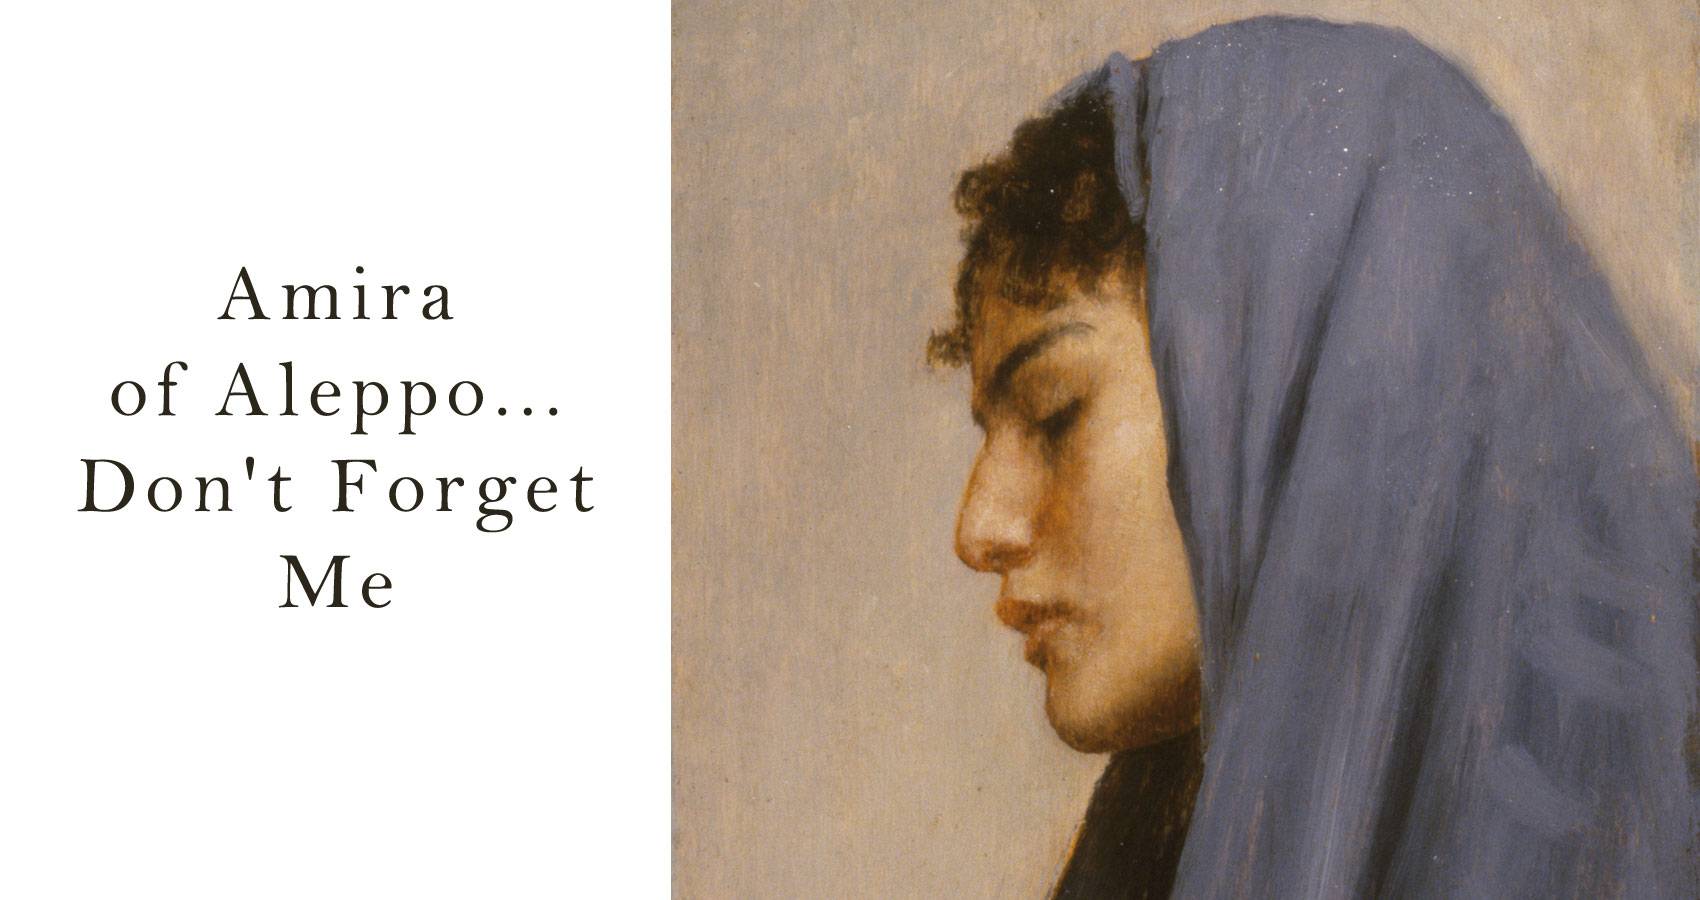 Amira of Aleppo... Don't Forget Me by LadyLily at Spillwords.com